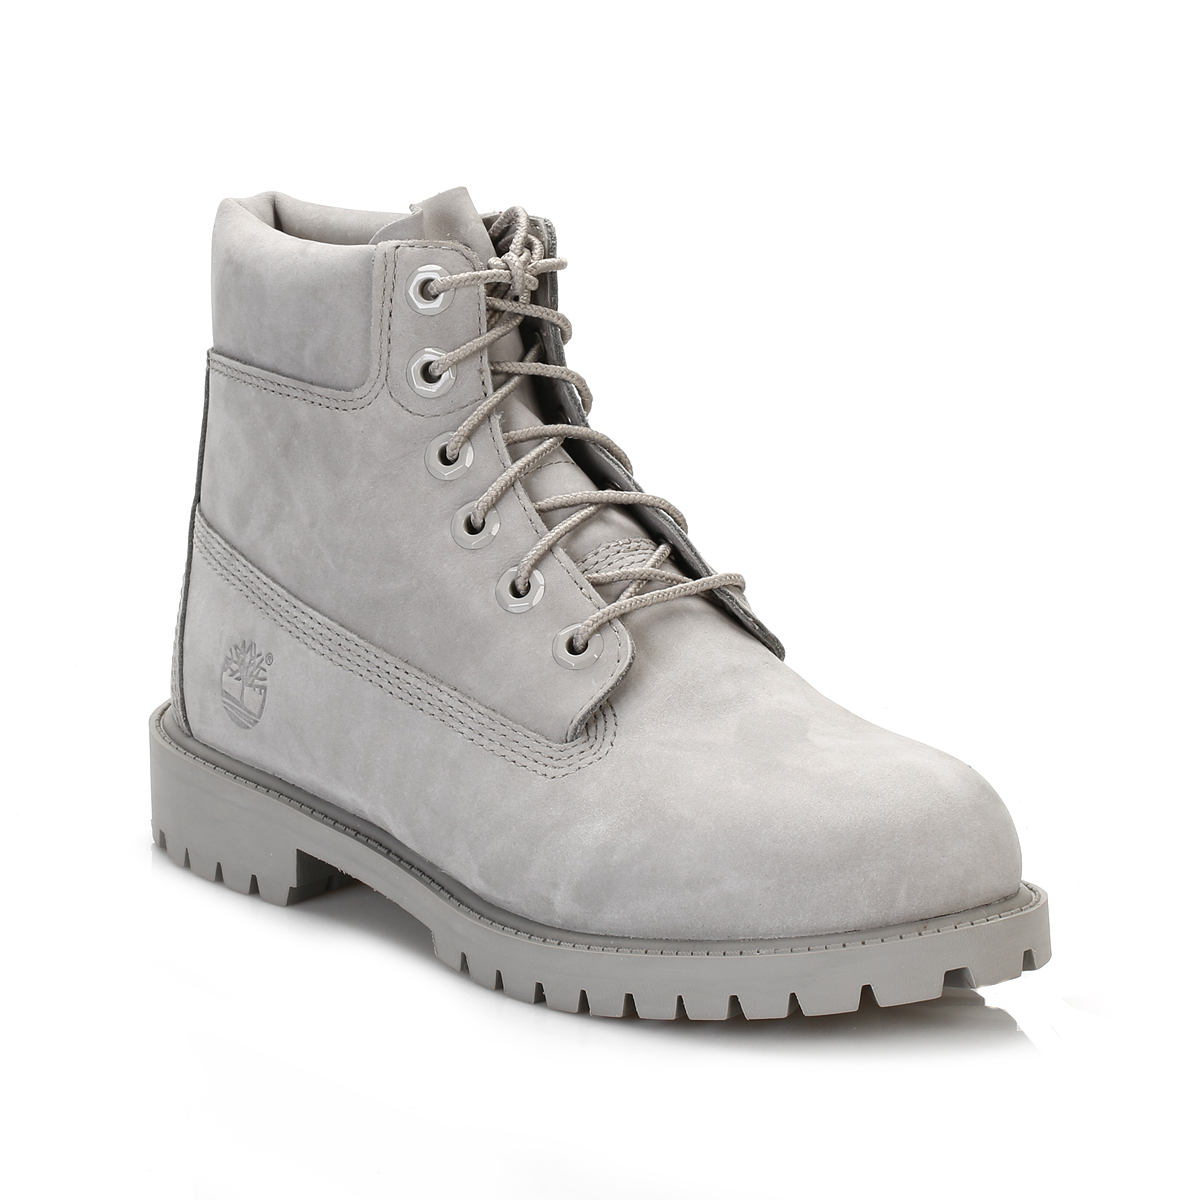 Shop for grey boots kids online at Target. Free shipping on purchases over $35 and save 5% every day with your Target REDcard.